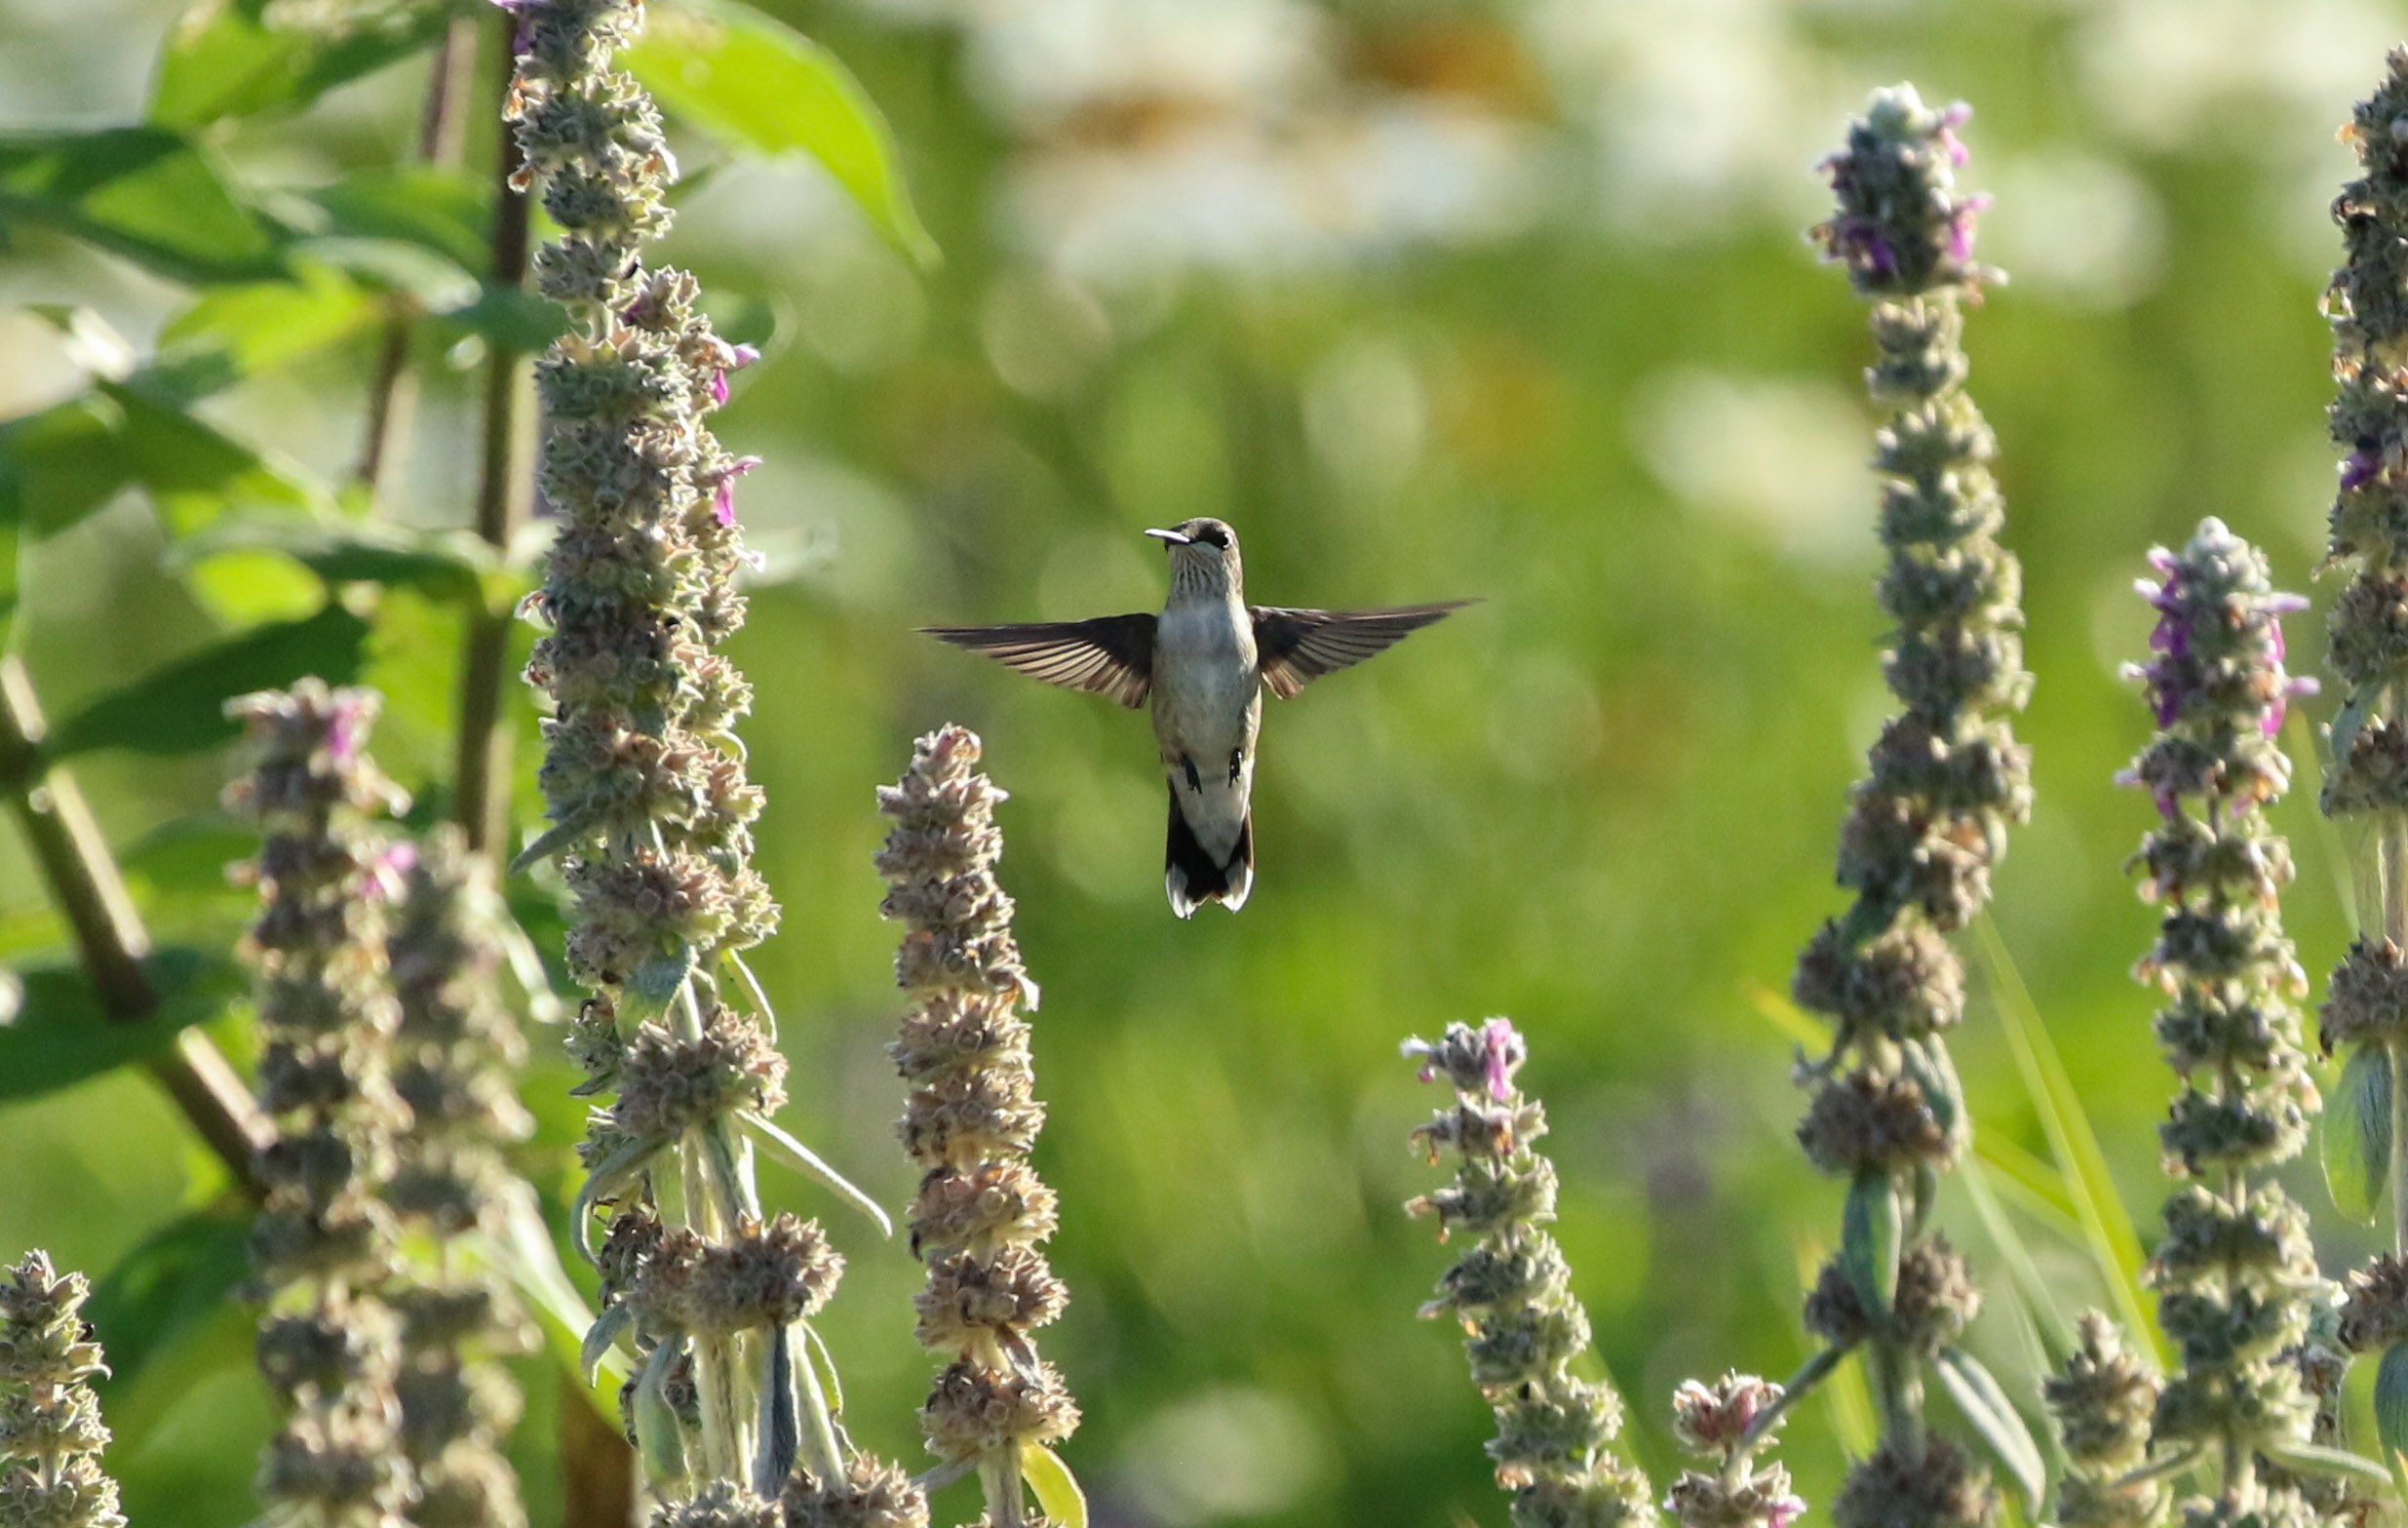 Female ruby-throated hummingbird in air by purple flowers North Carolina by Millie Kerr-1.jpg